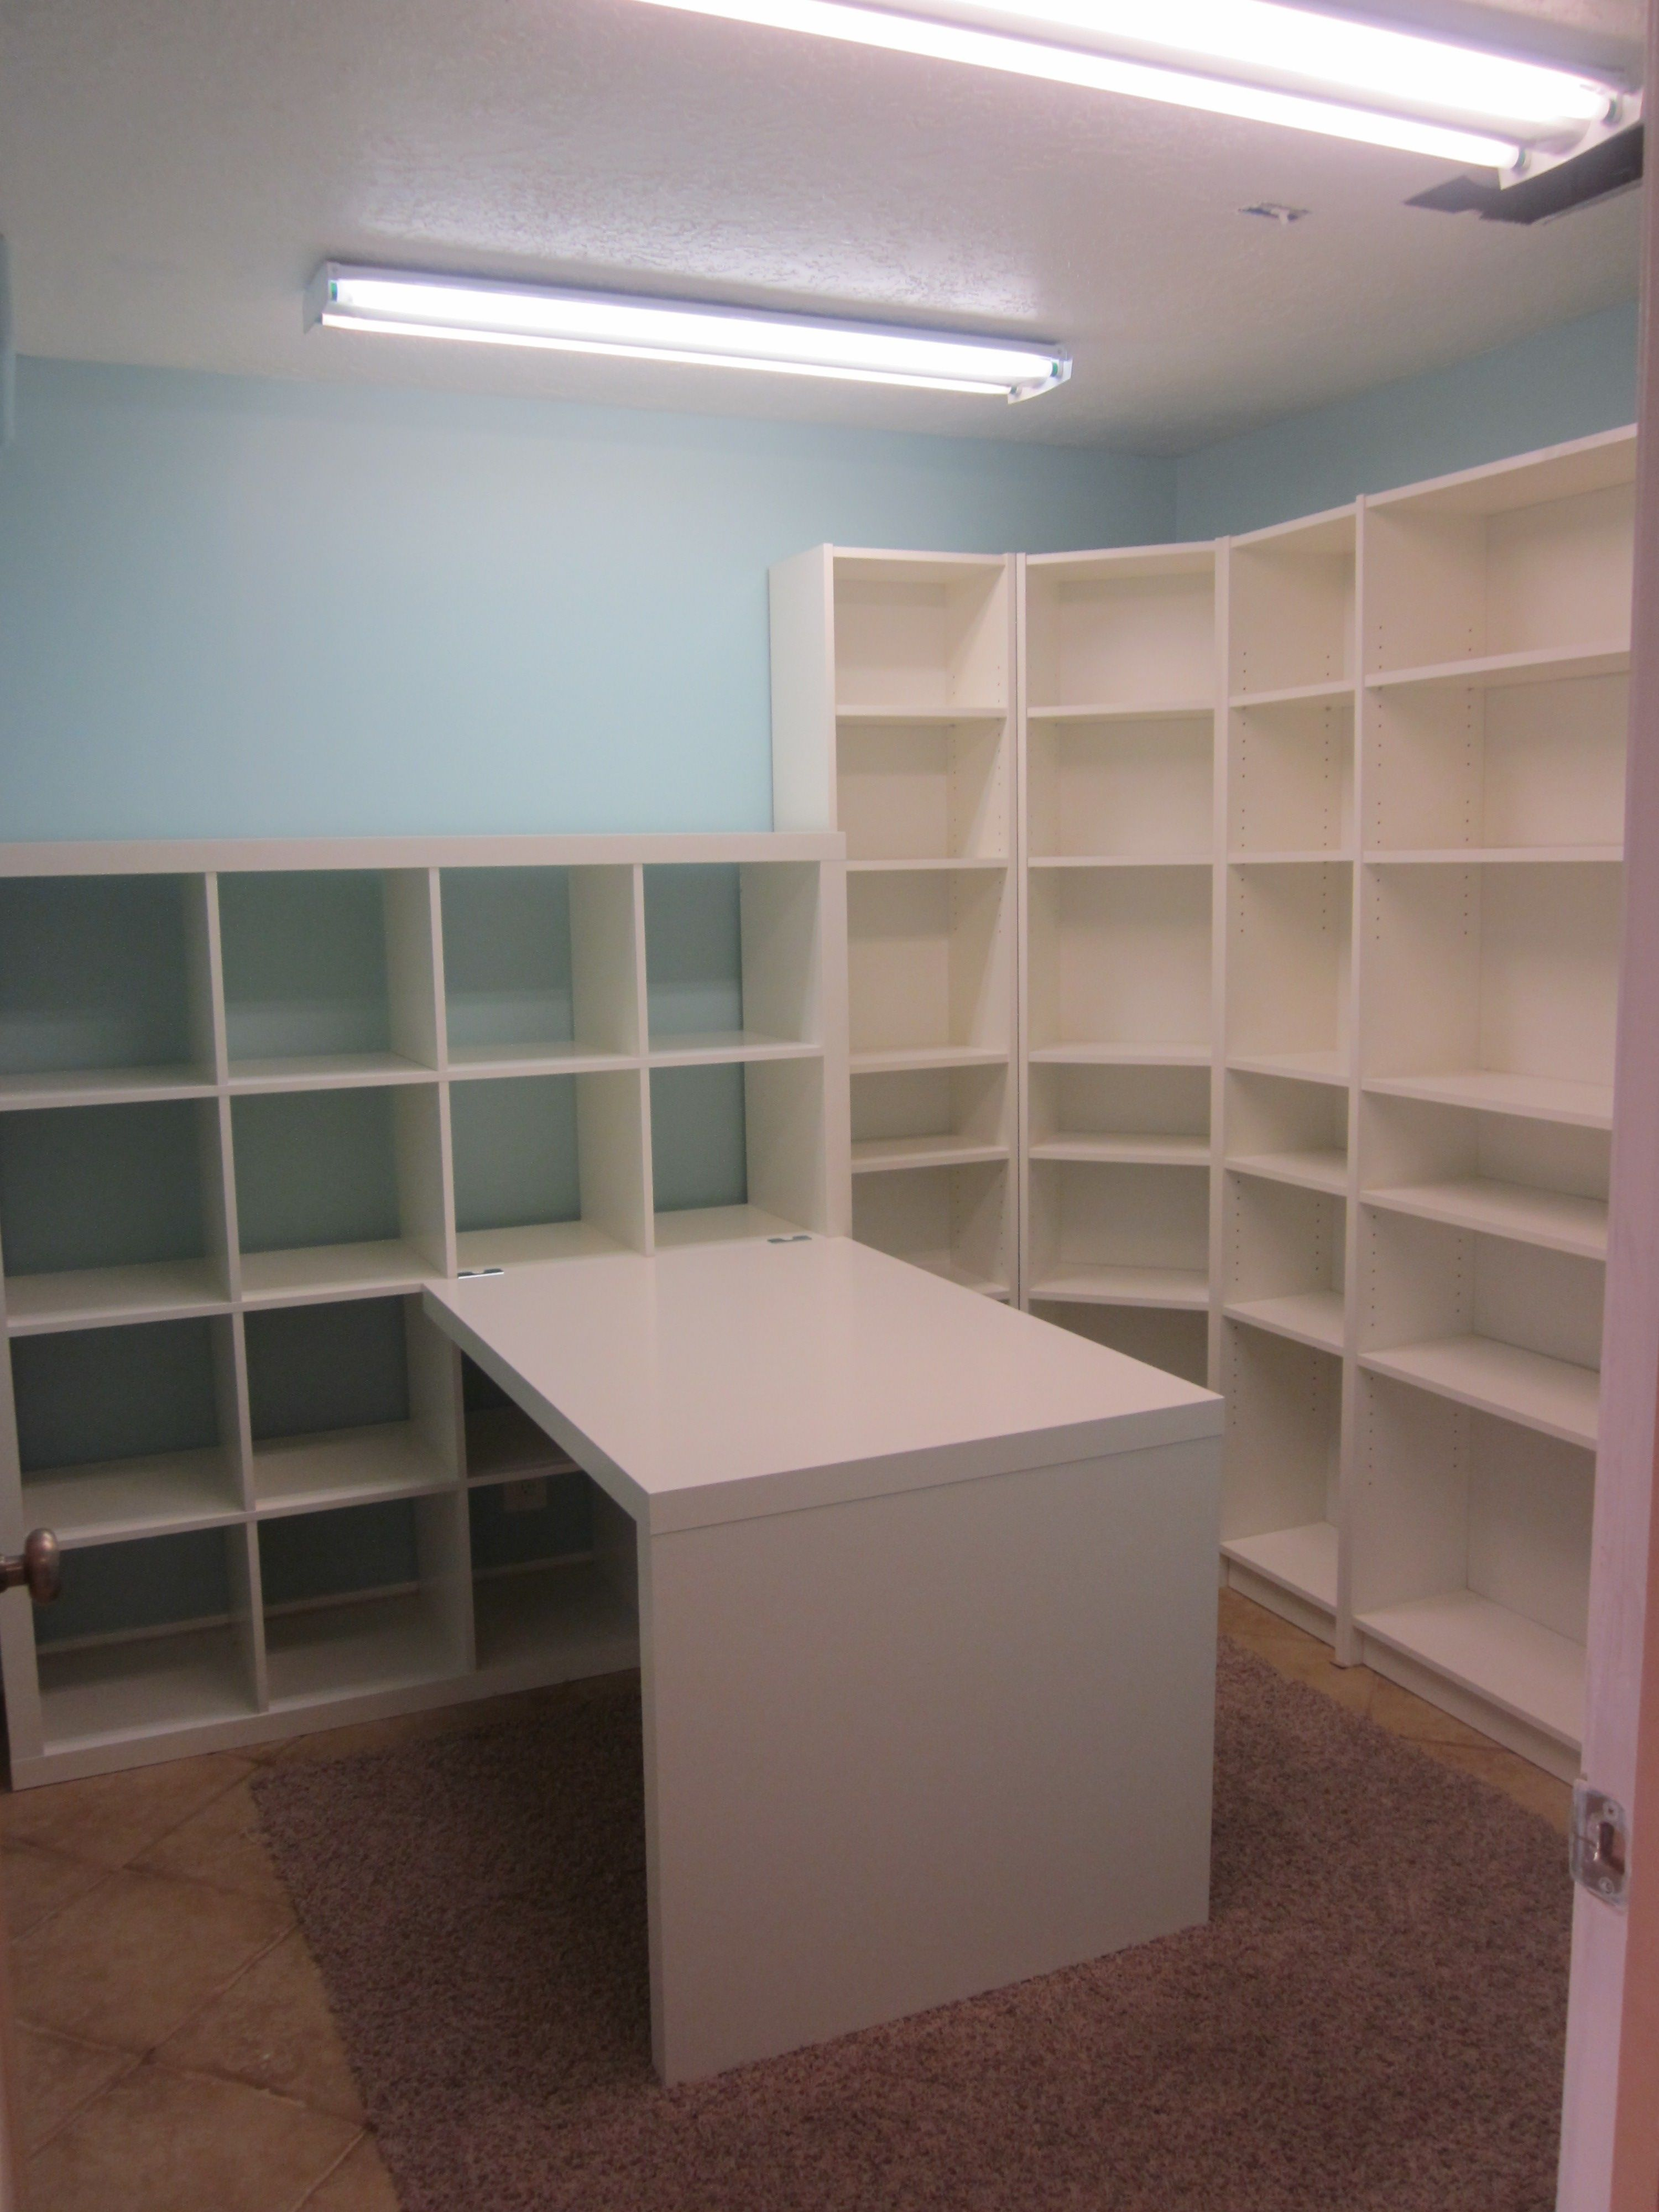 Craft Room / Sewing Room Ideas Using Lots Of Shelves. Description From  Pinterest.com